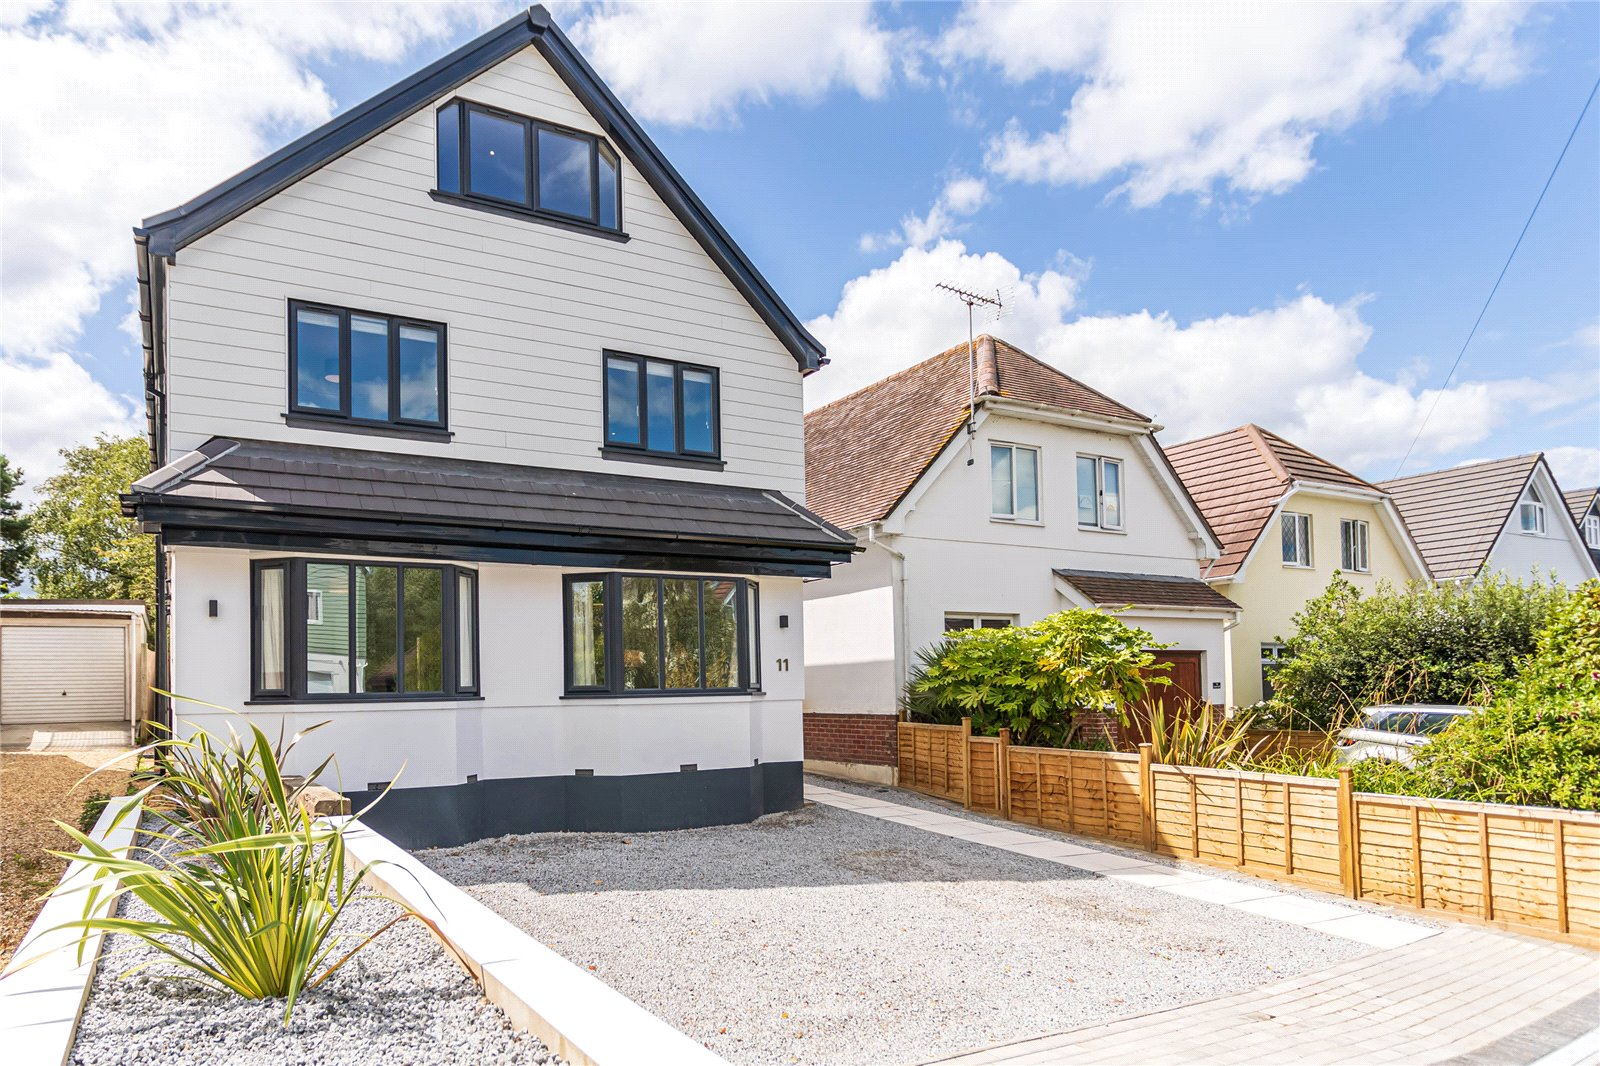 6 bed house for sale in Arley Road, Whitecliff  - Property Image 1